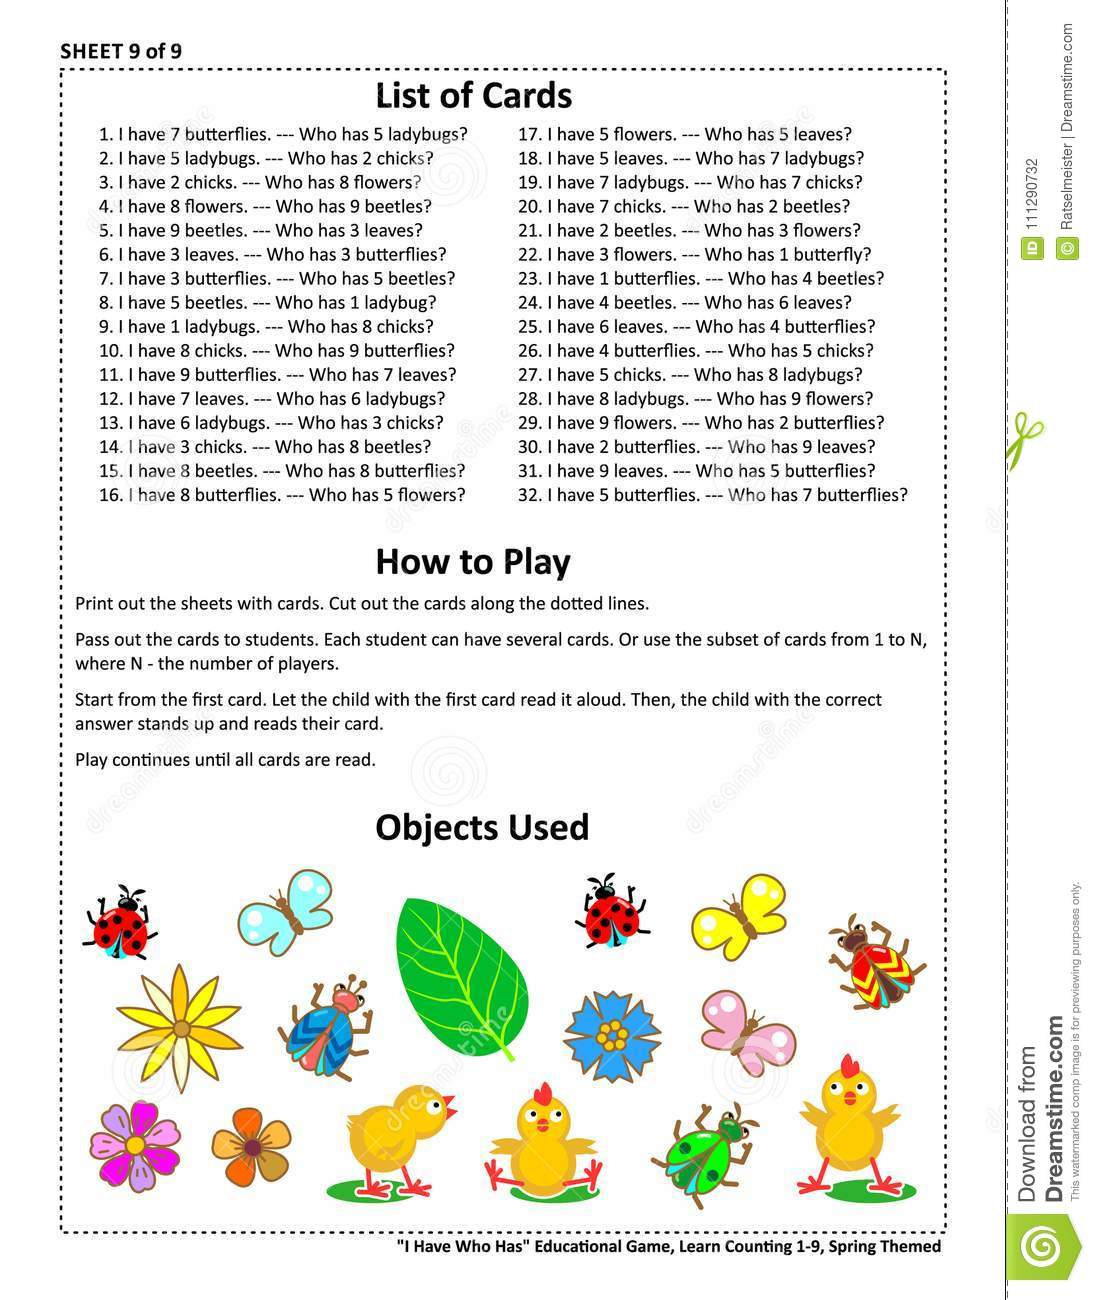 educational group game i have who has learn counting sheet 9 of